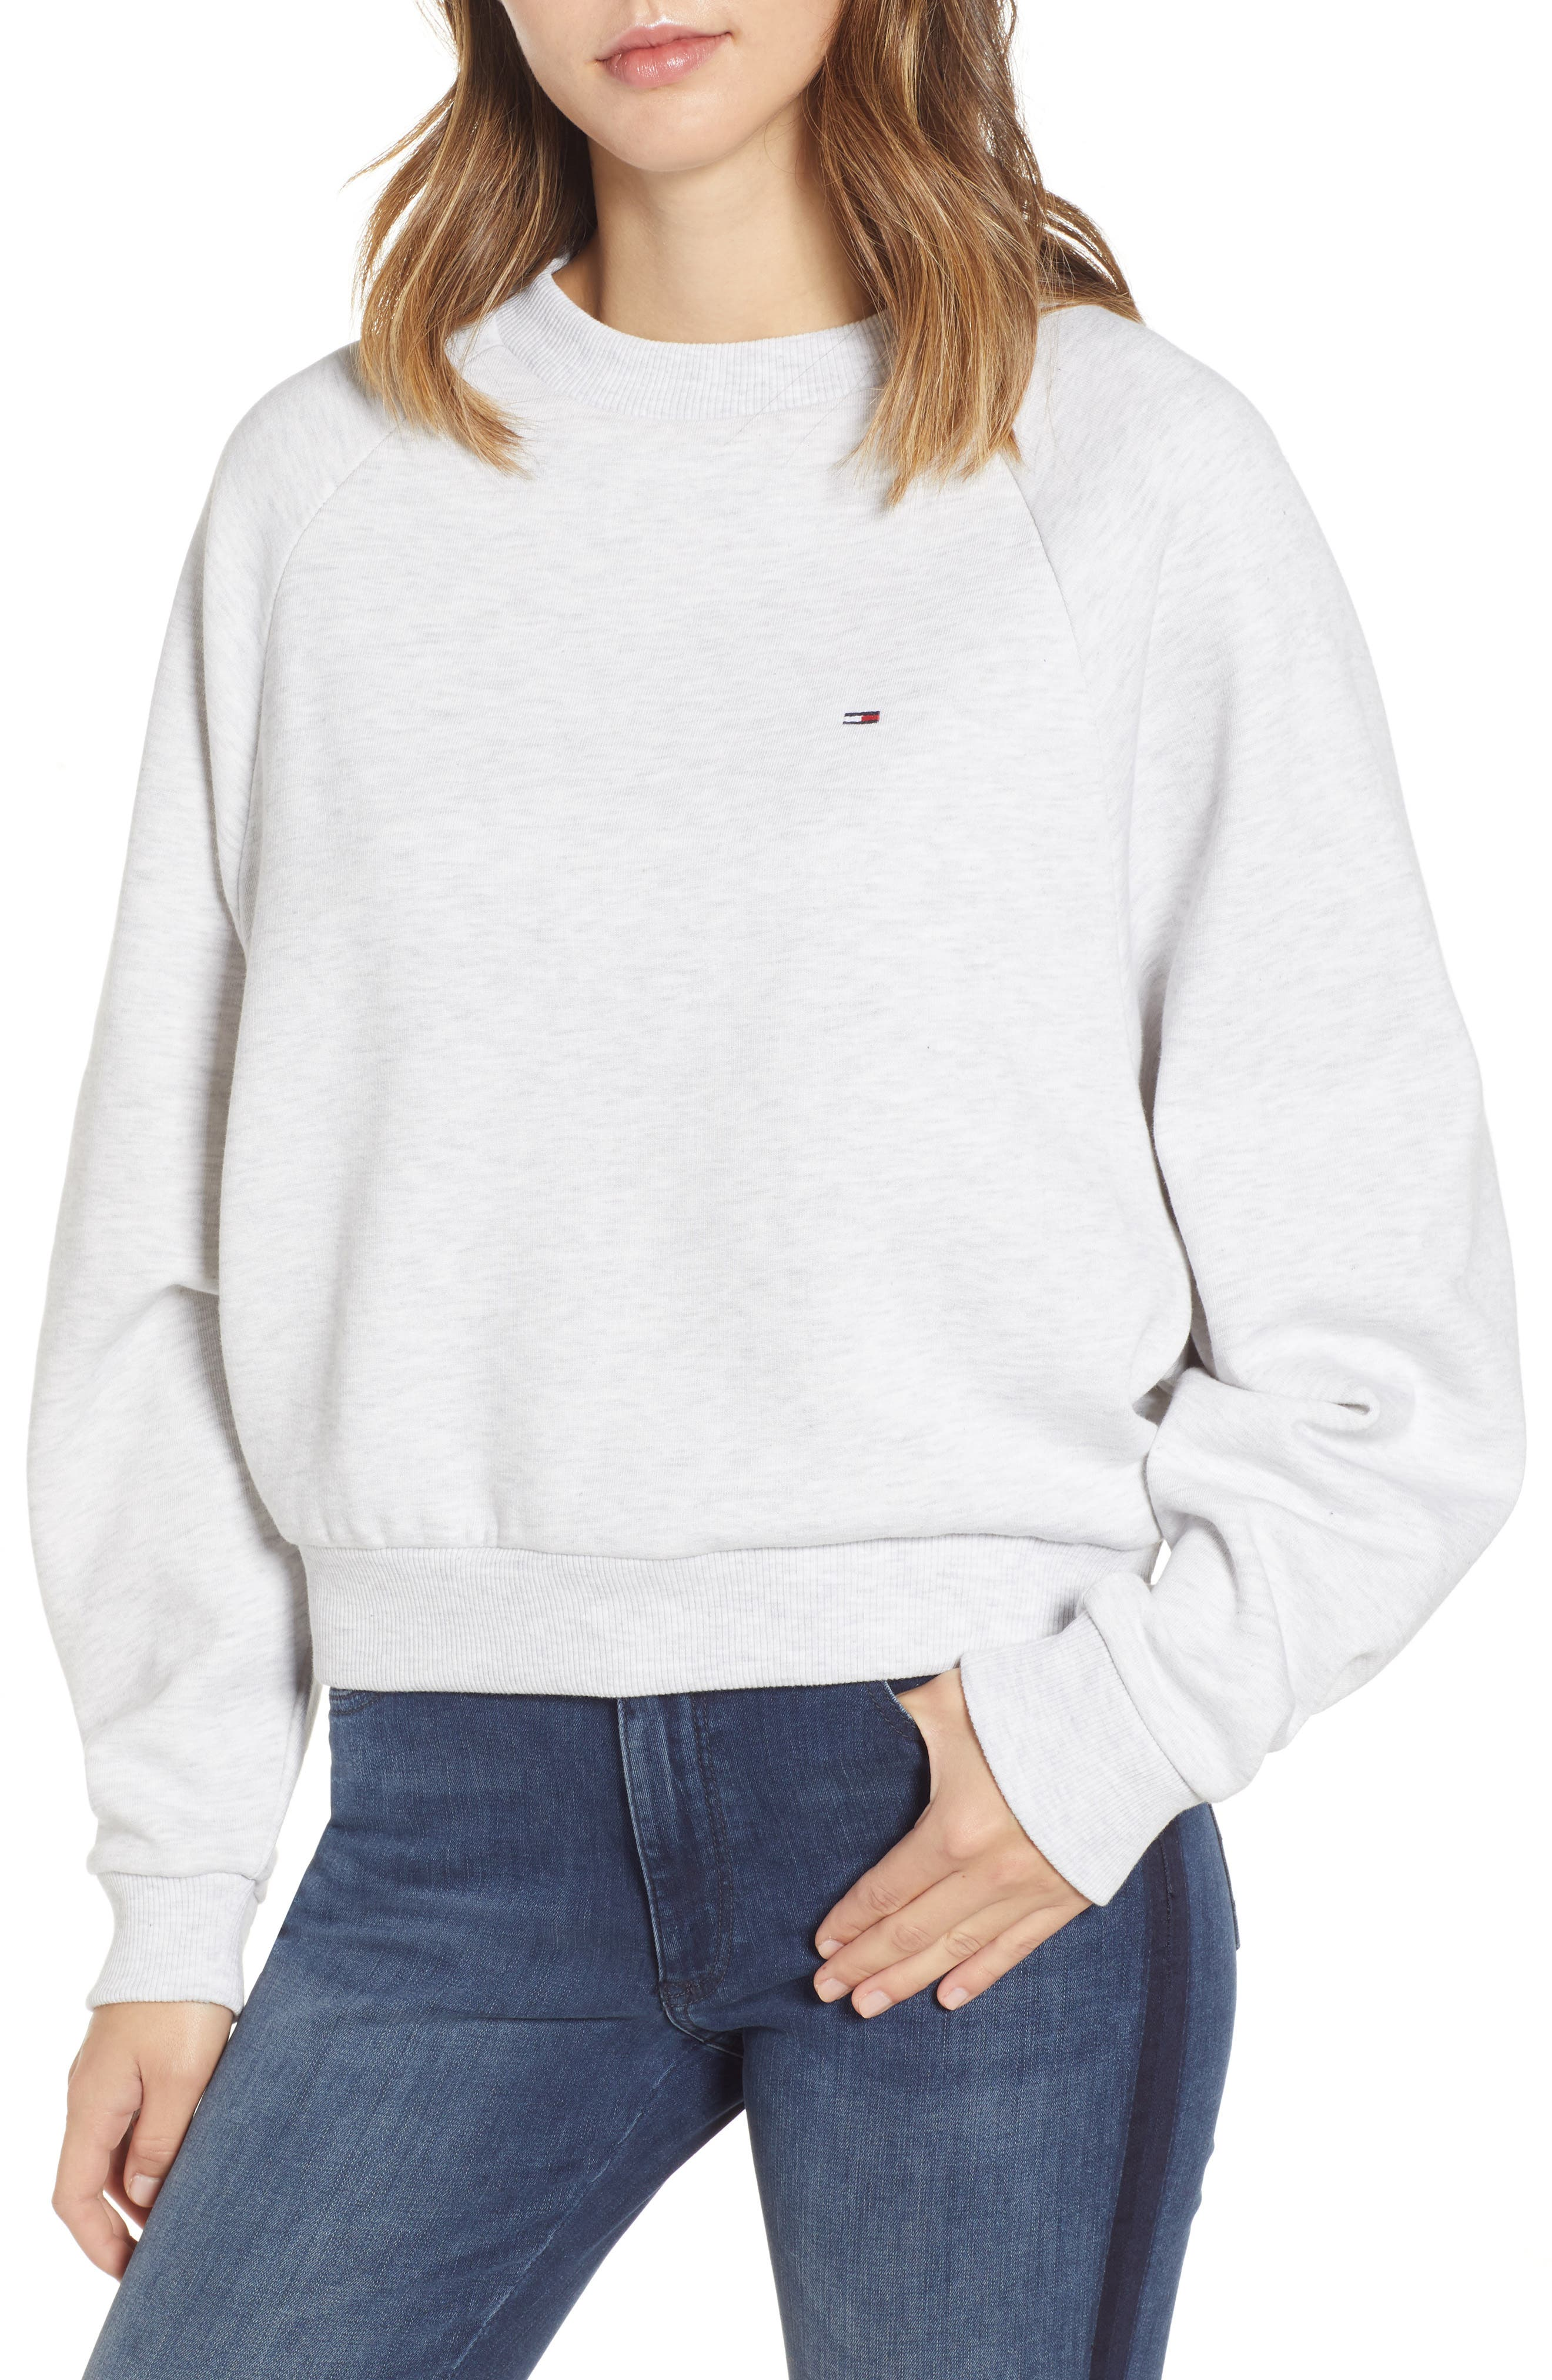 TJW Raglan Sweatshirt,                         Main,                         color, PALE GREY HEATHER